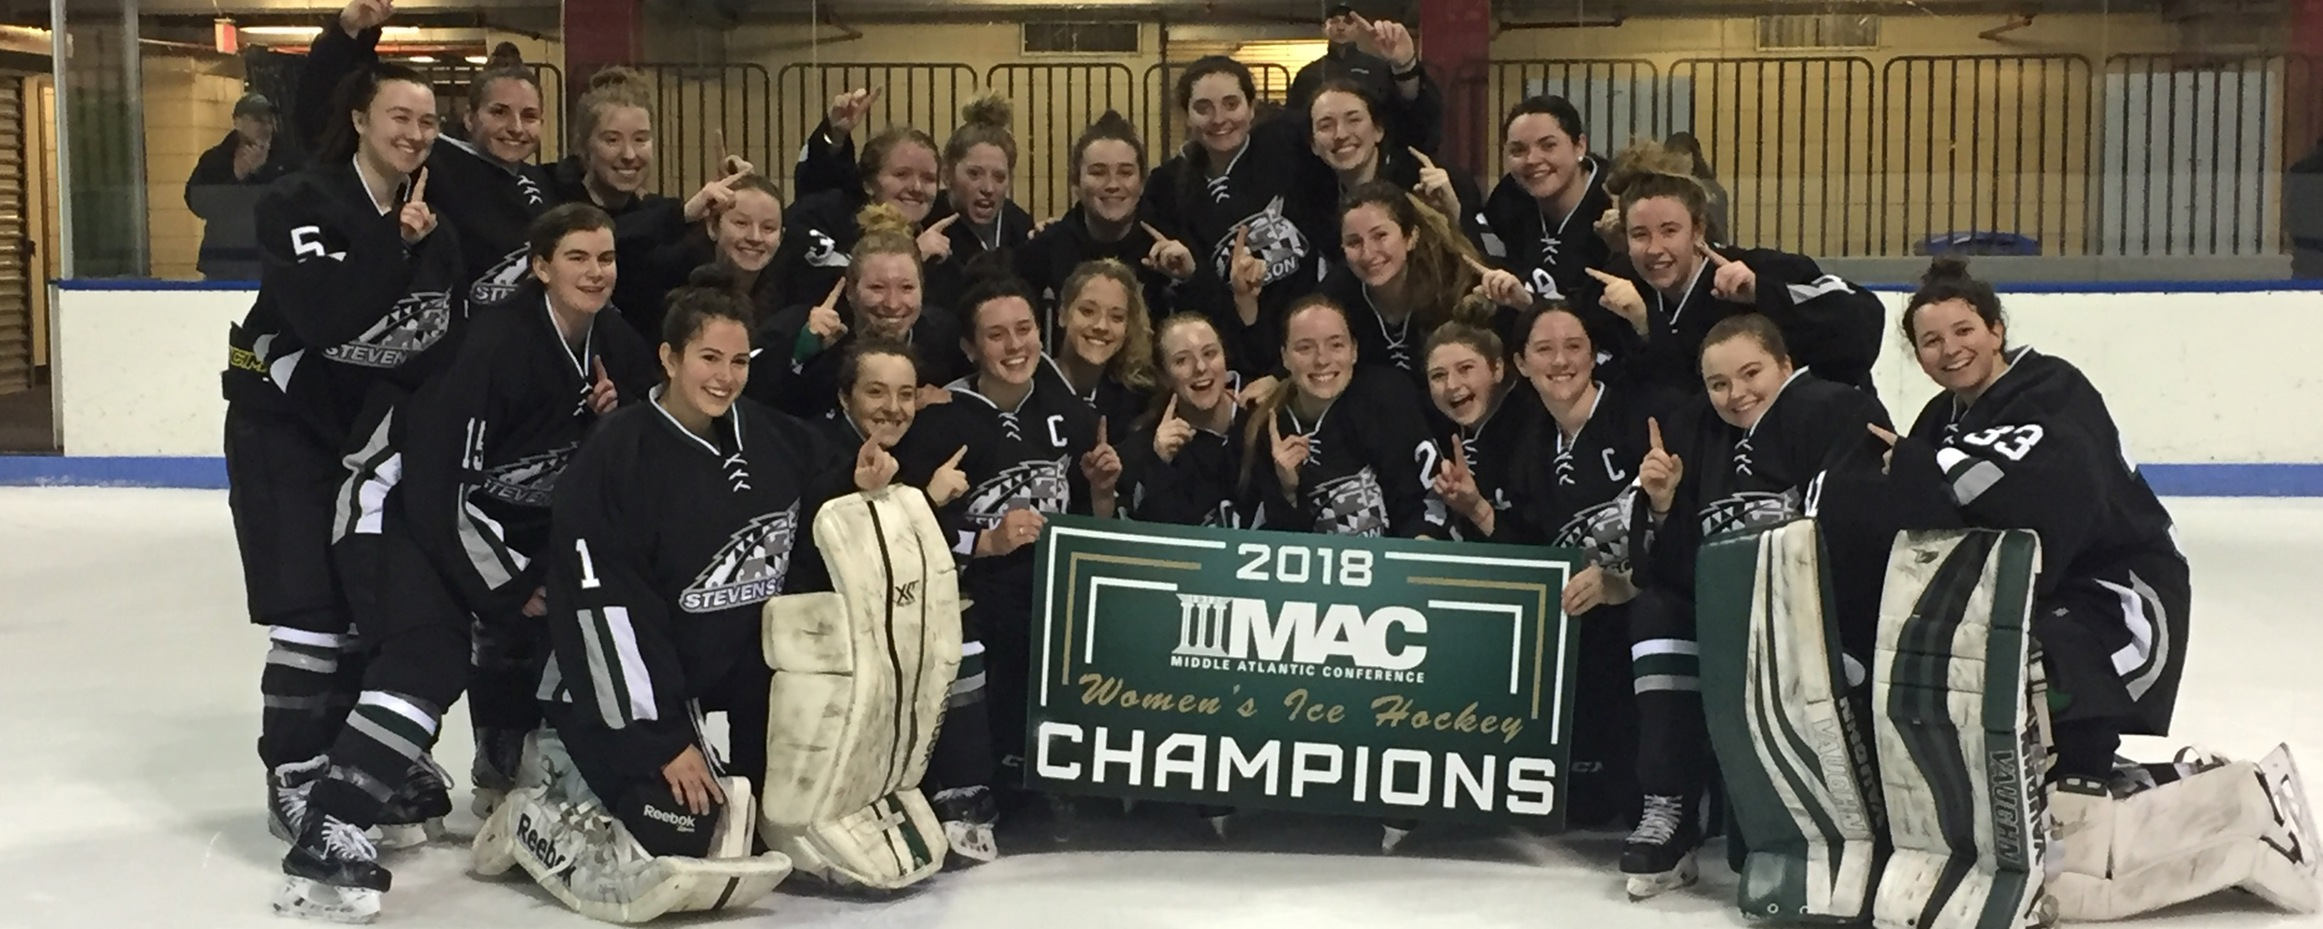 Mustangs Claim MAC Title With 3-1 Victory Over Manhattanville